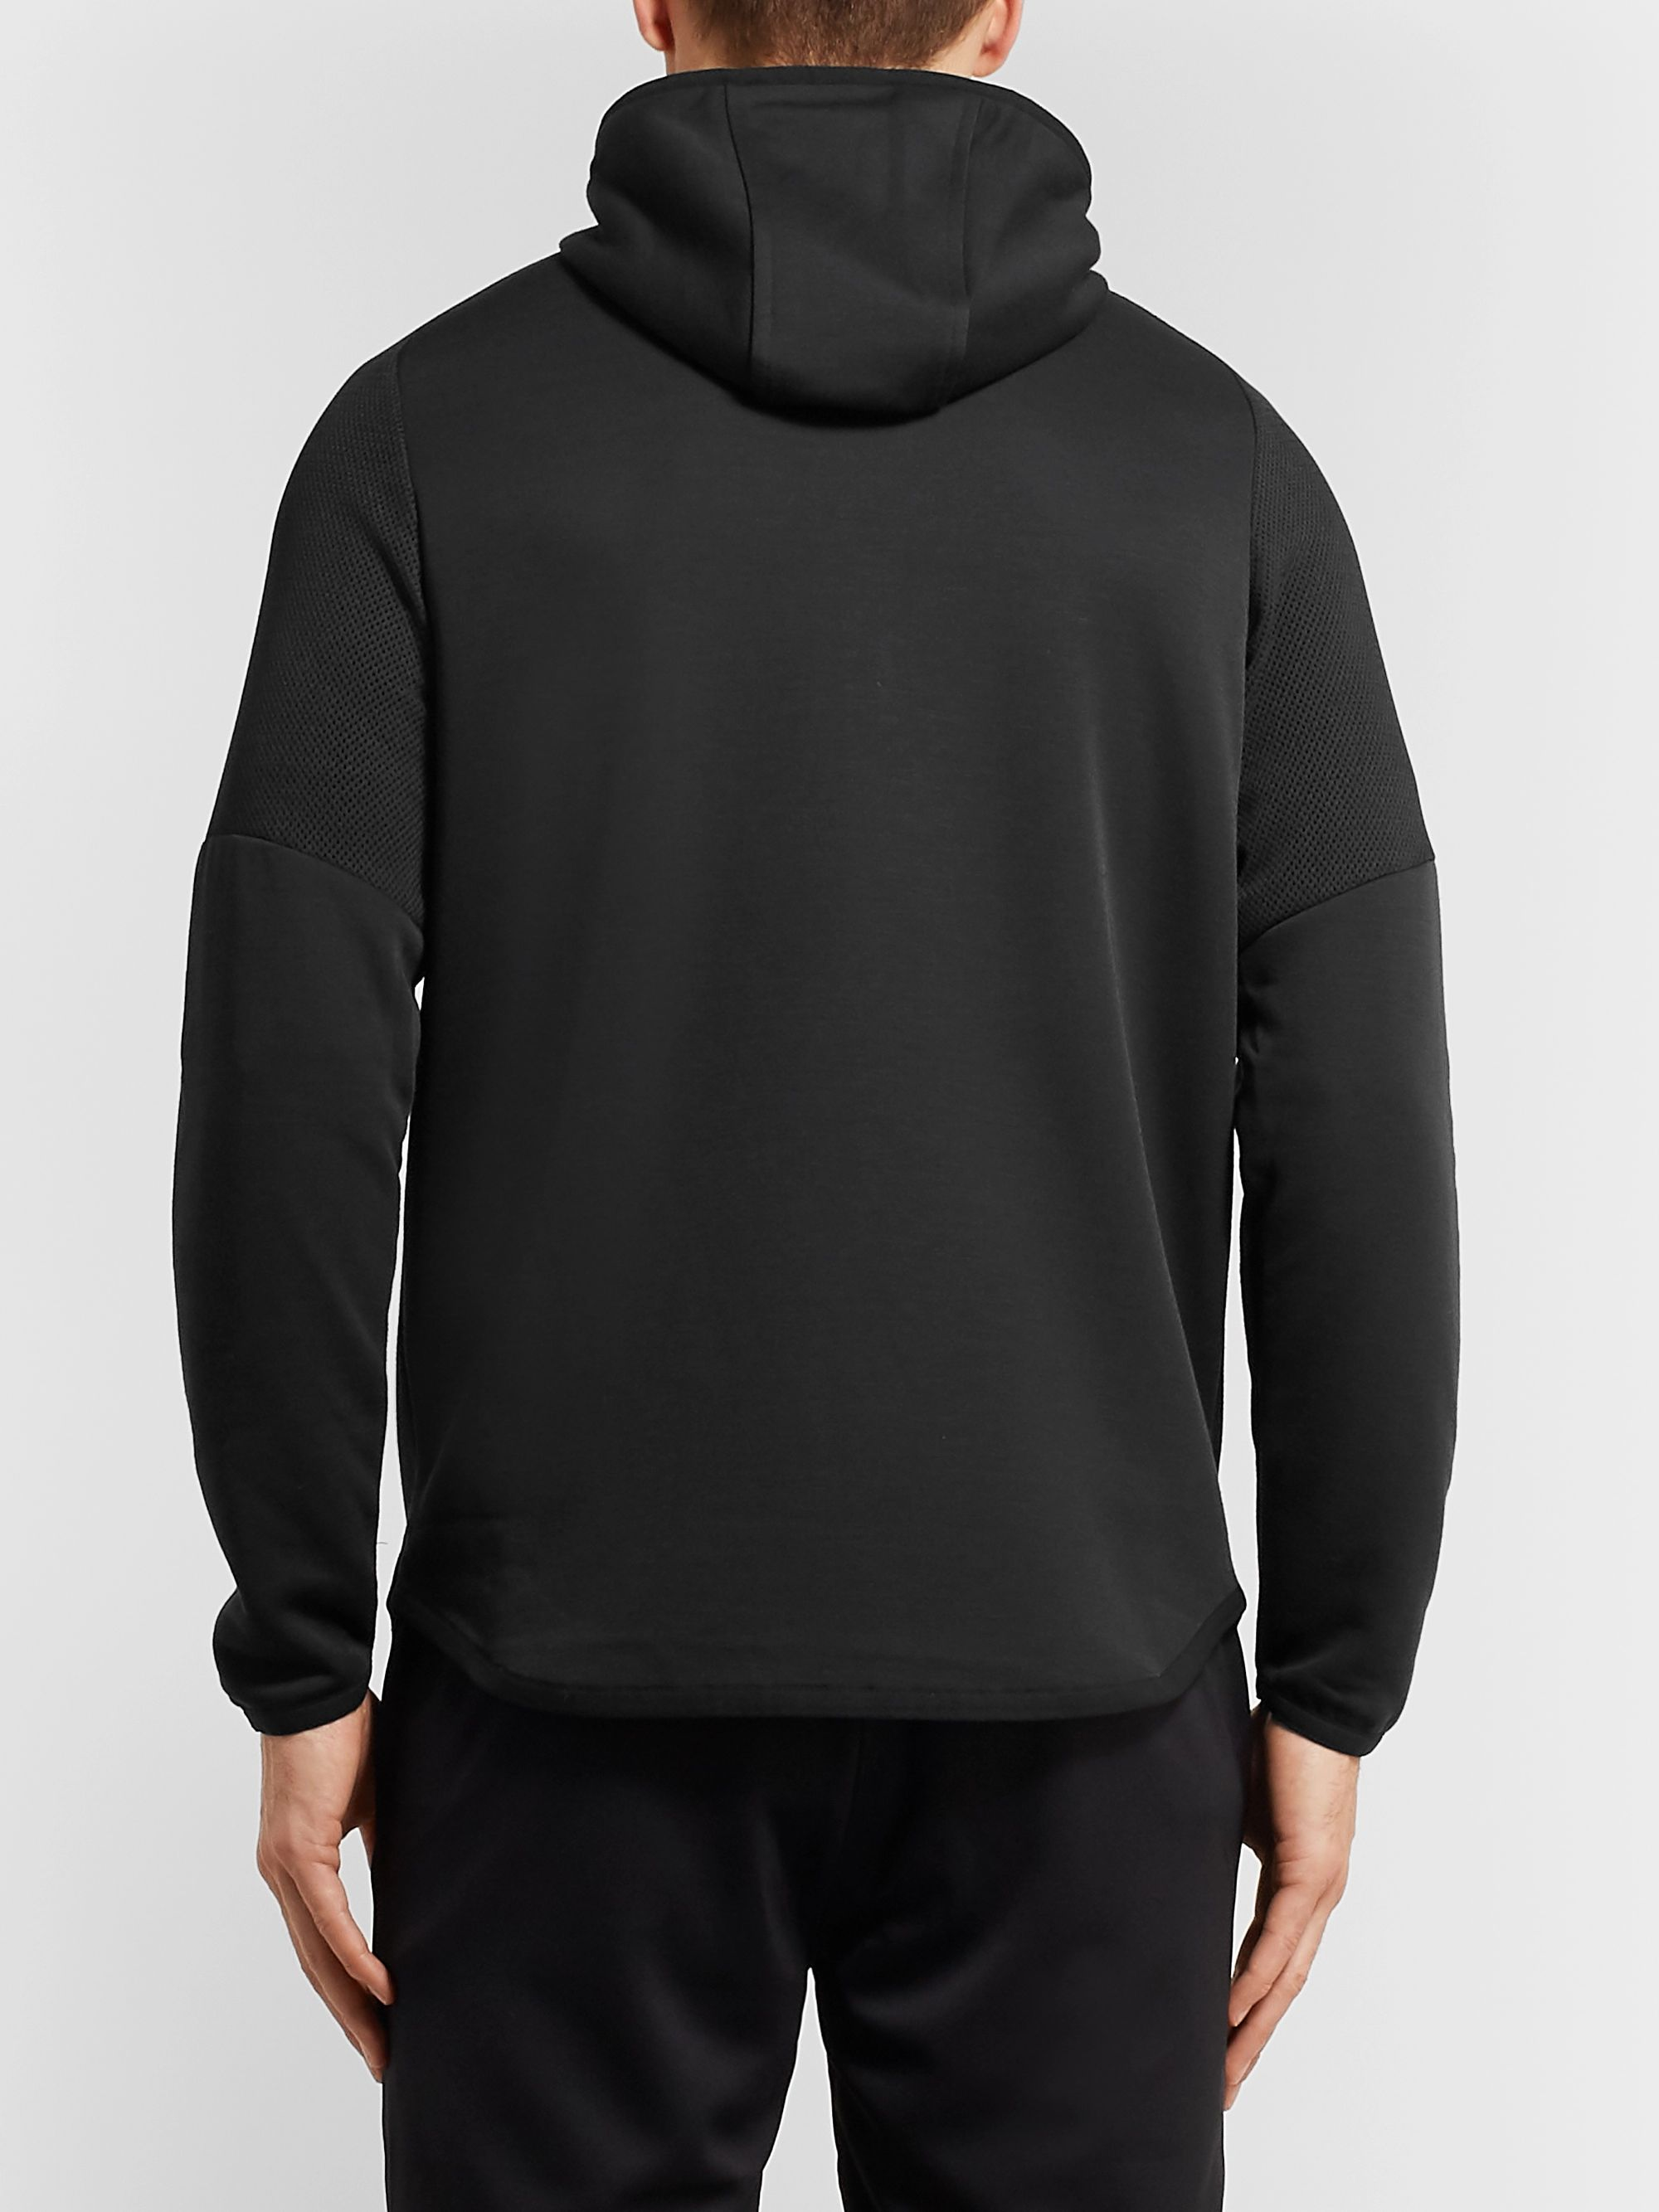 Under Armour UA Unstoppable Move Tech-Jersey Zip-Up Hoodie